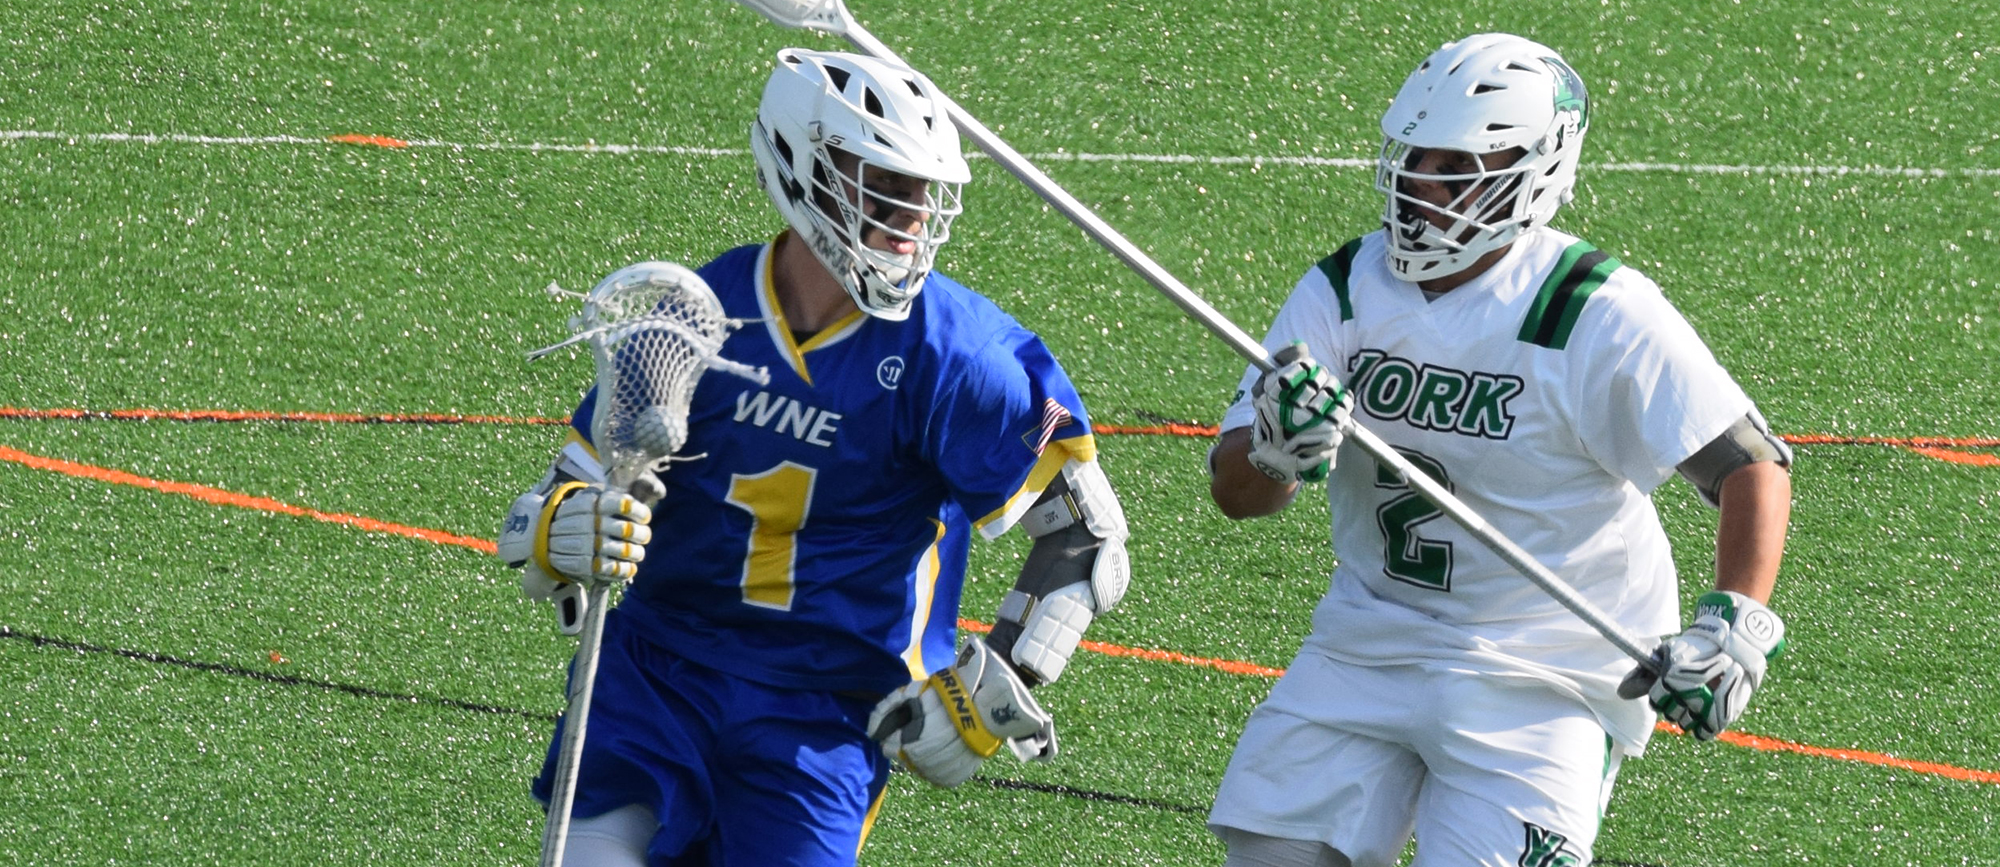 Senior Mikey Wood scored two goals in Western New England's 15-7 loss to York College in the second round of the NCAA Tournament on Wednesday.